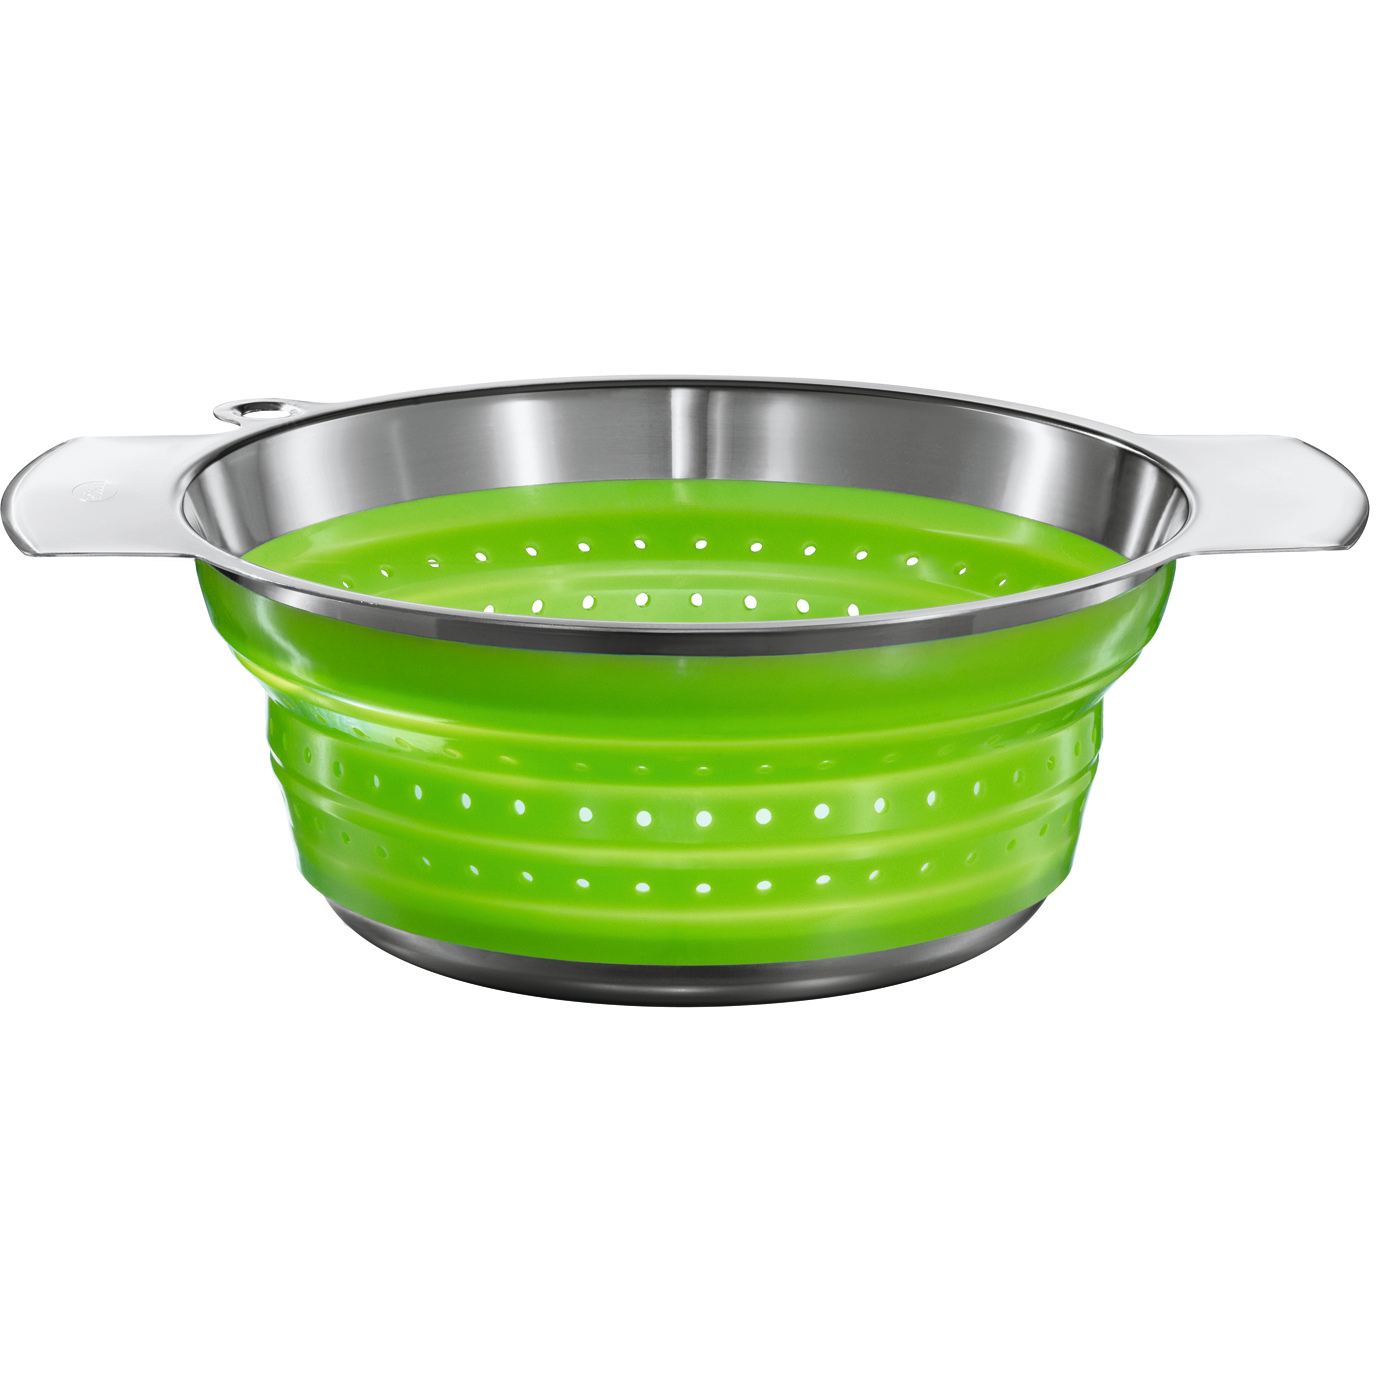 Rosle Green Silicone Collapsible Colander, 9.4 Inch